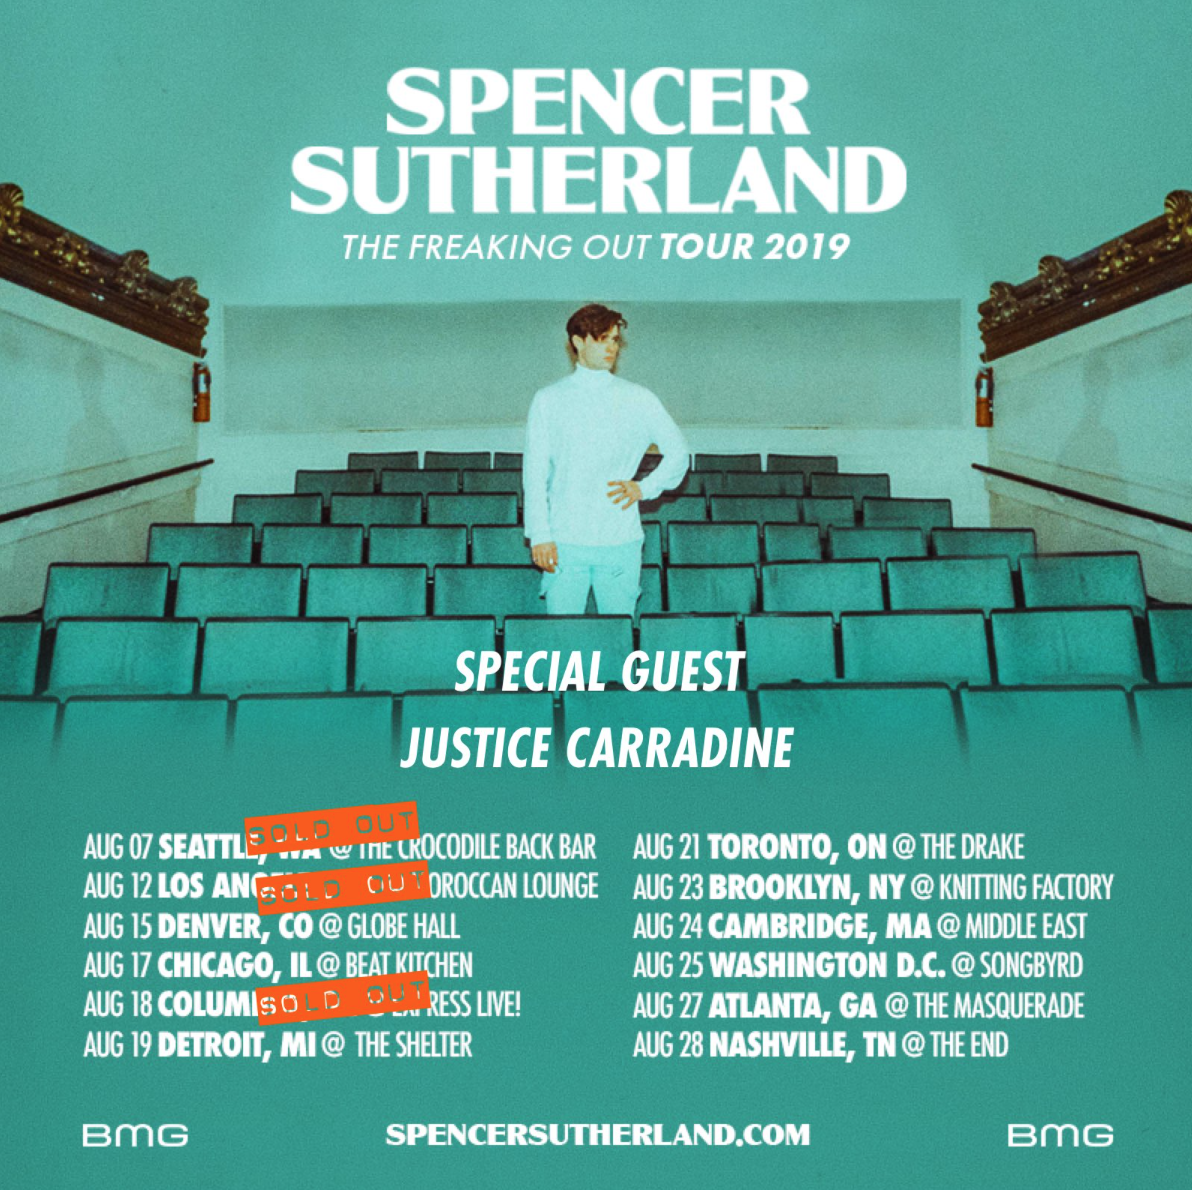 Spencer Sutherland's The Freaking Out Tour Sweepstakes